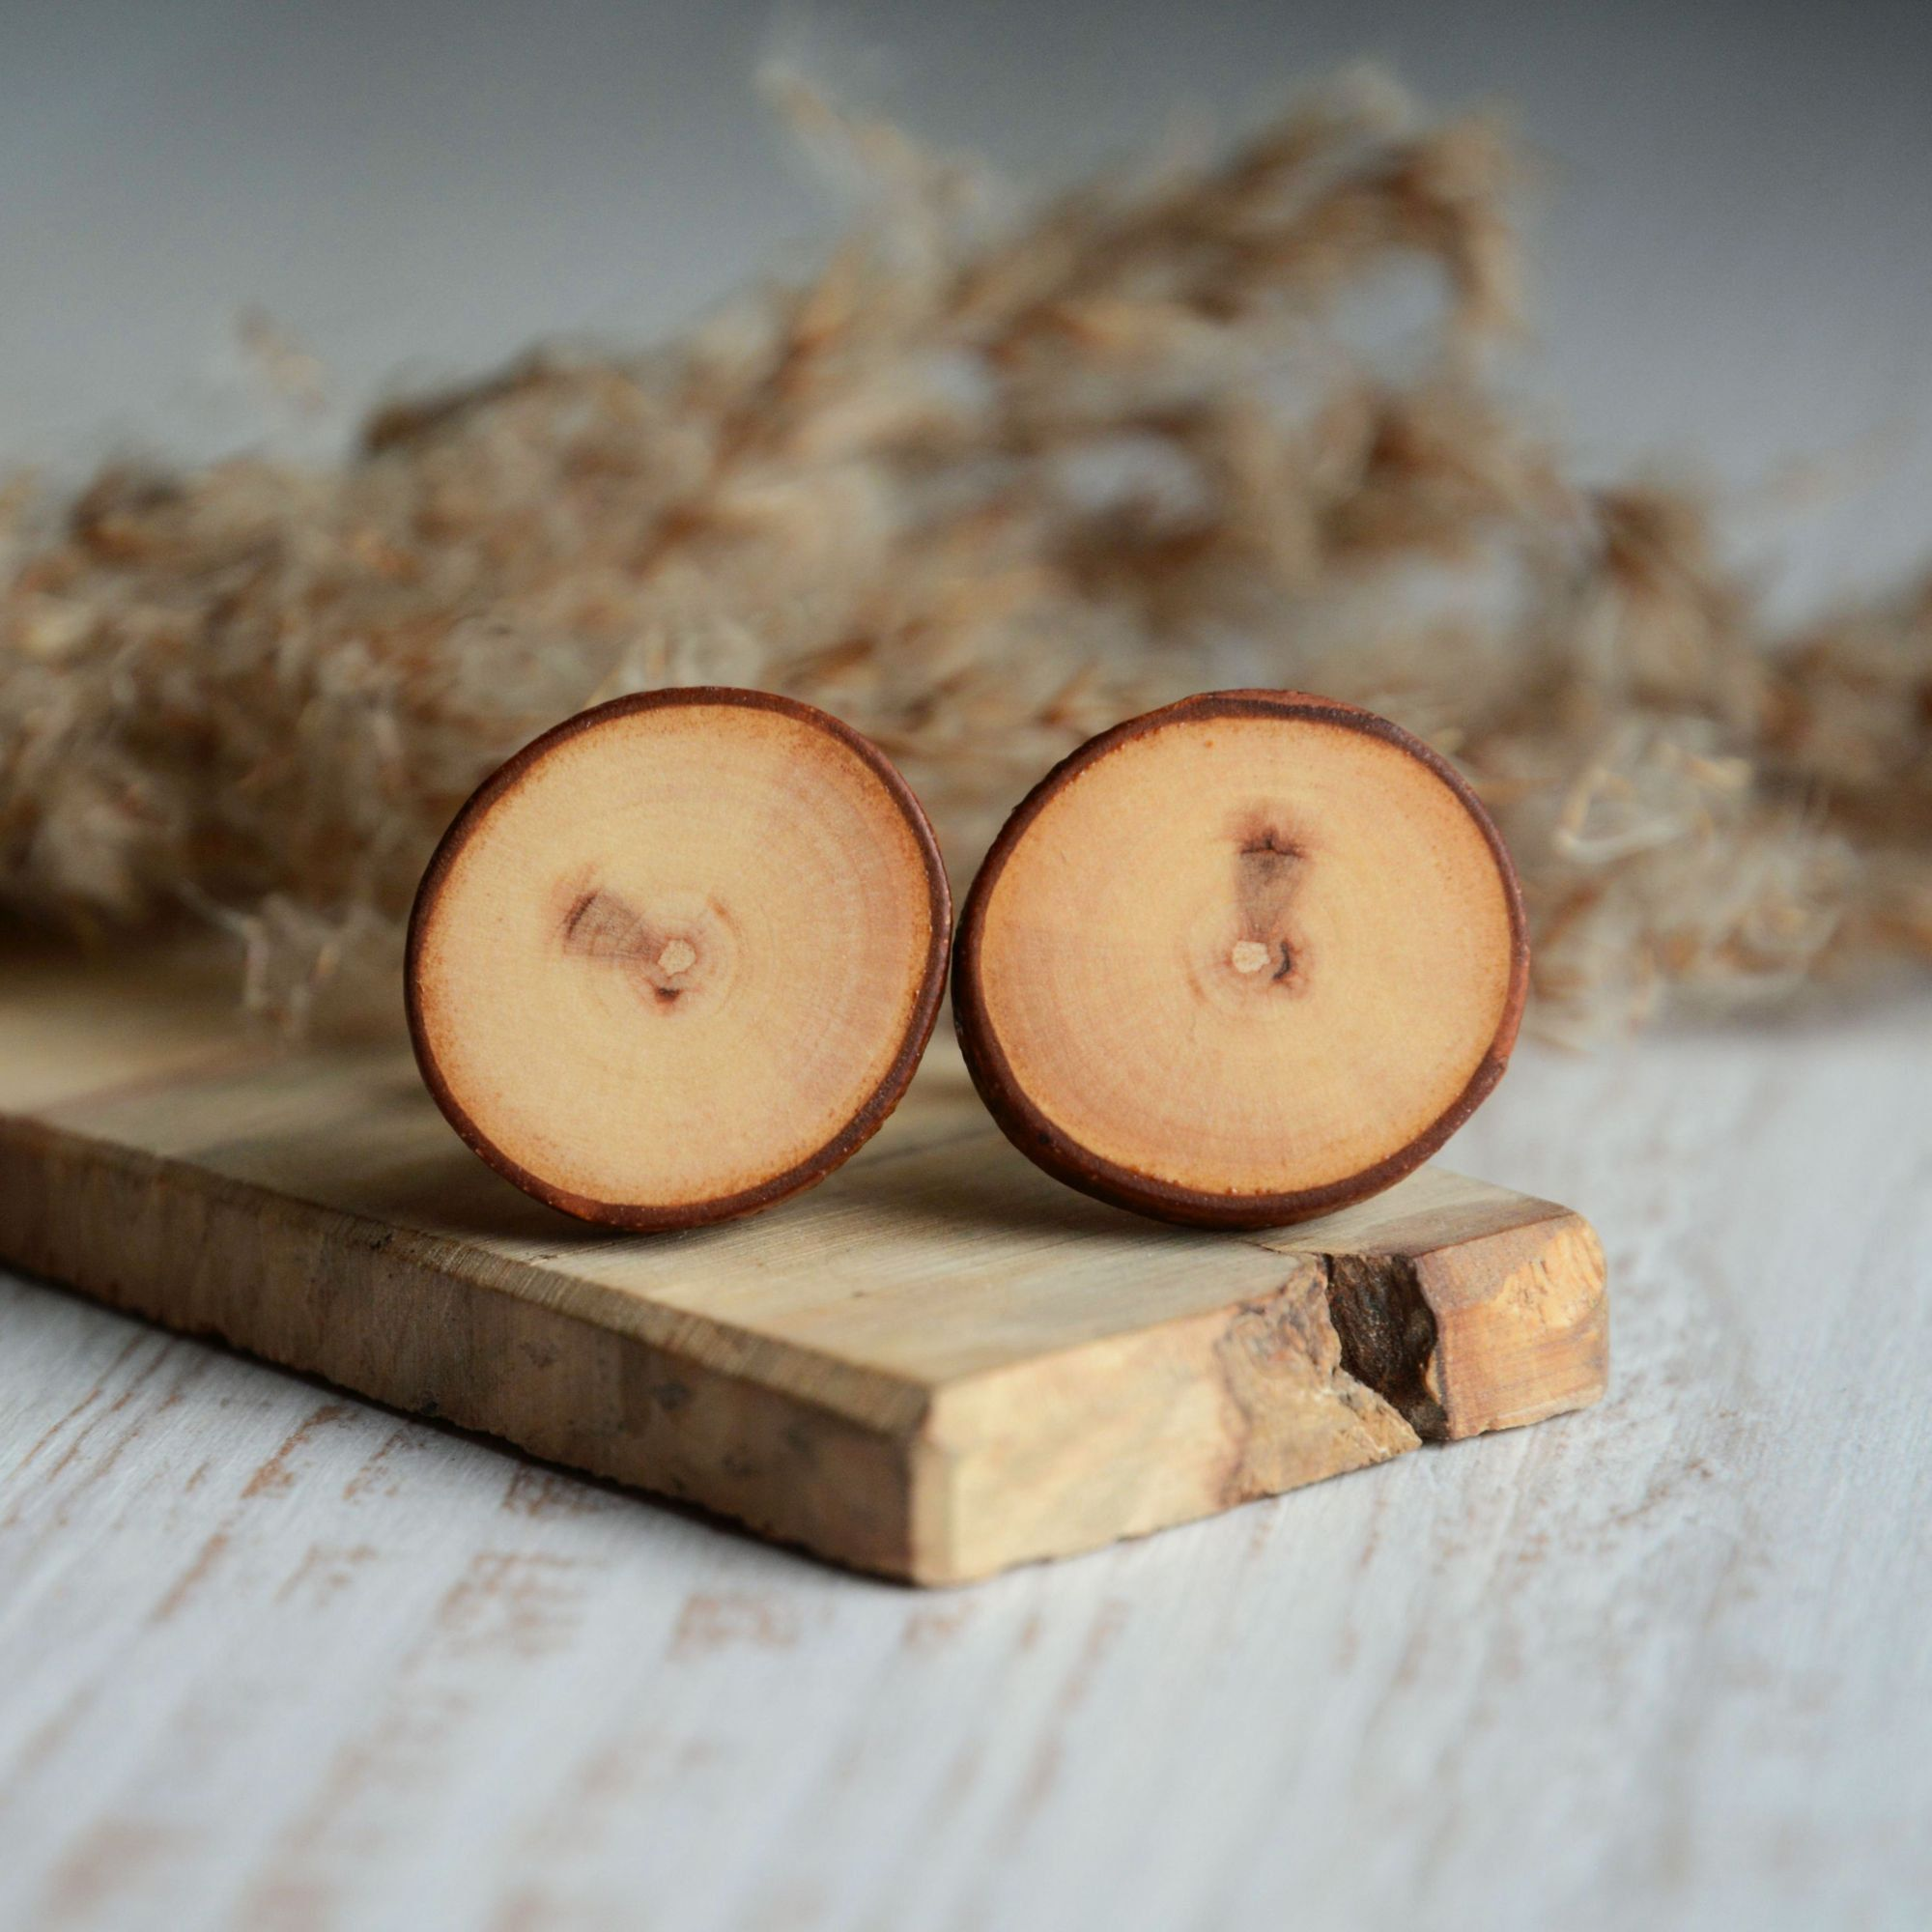 9th anniversary willow wood cufflinks gift idea for the